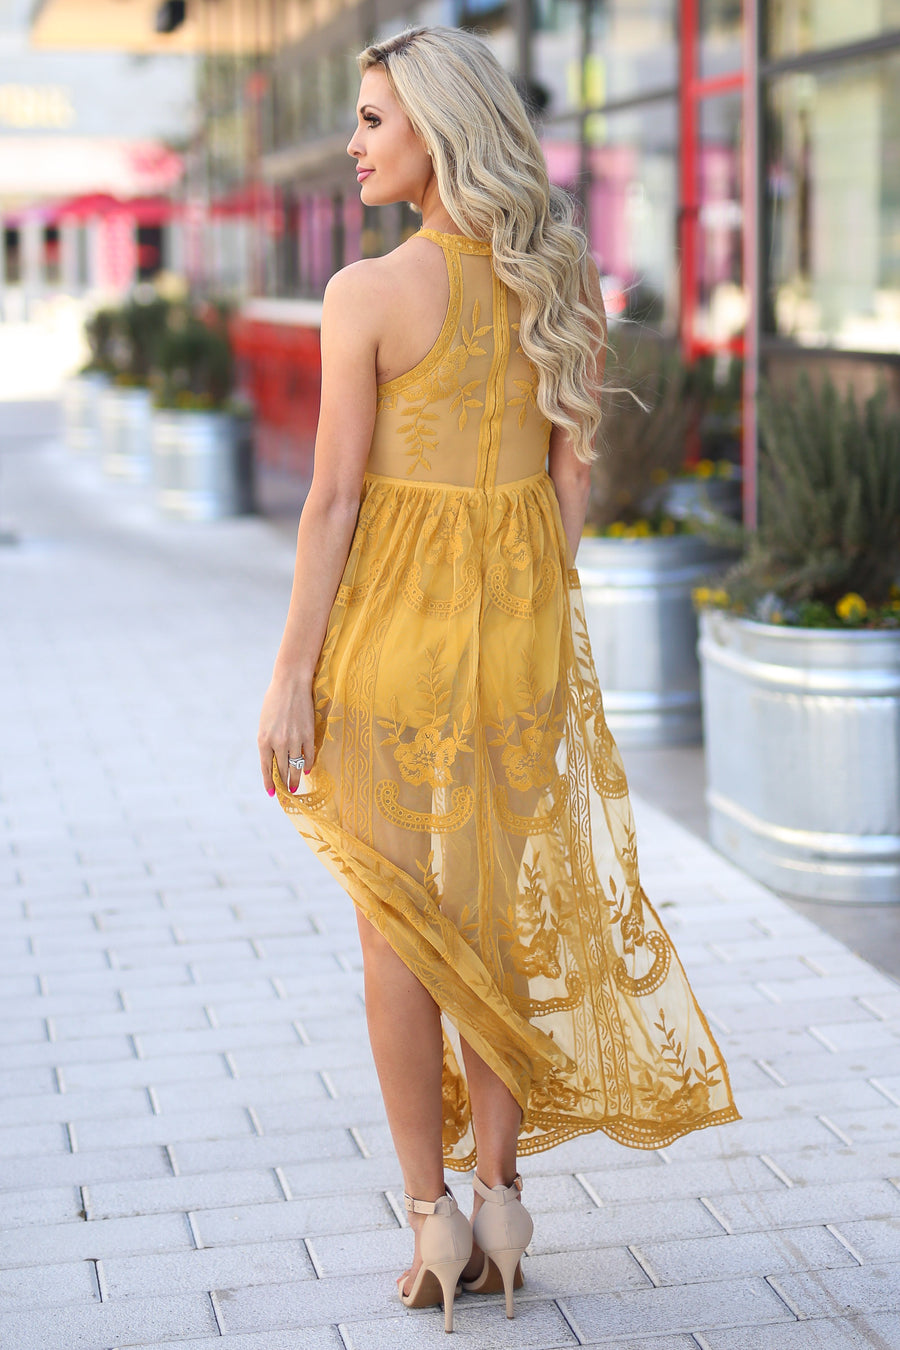 St. Tropez Maxi Dress - Beautiful mustard lace maxi dress, front, Closet Candy Boutique